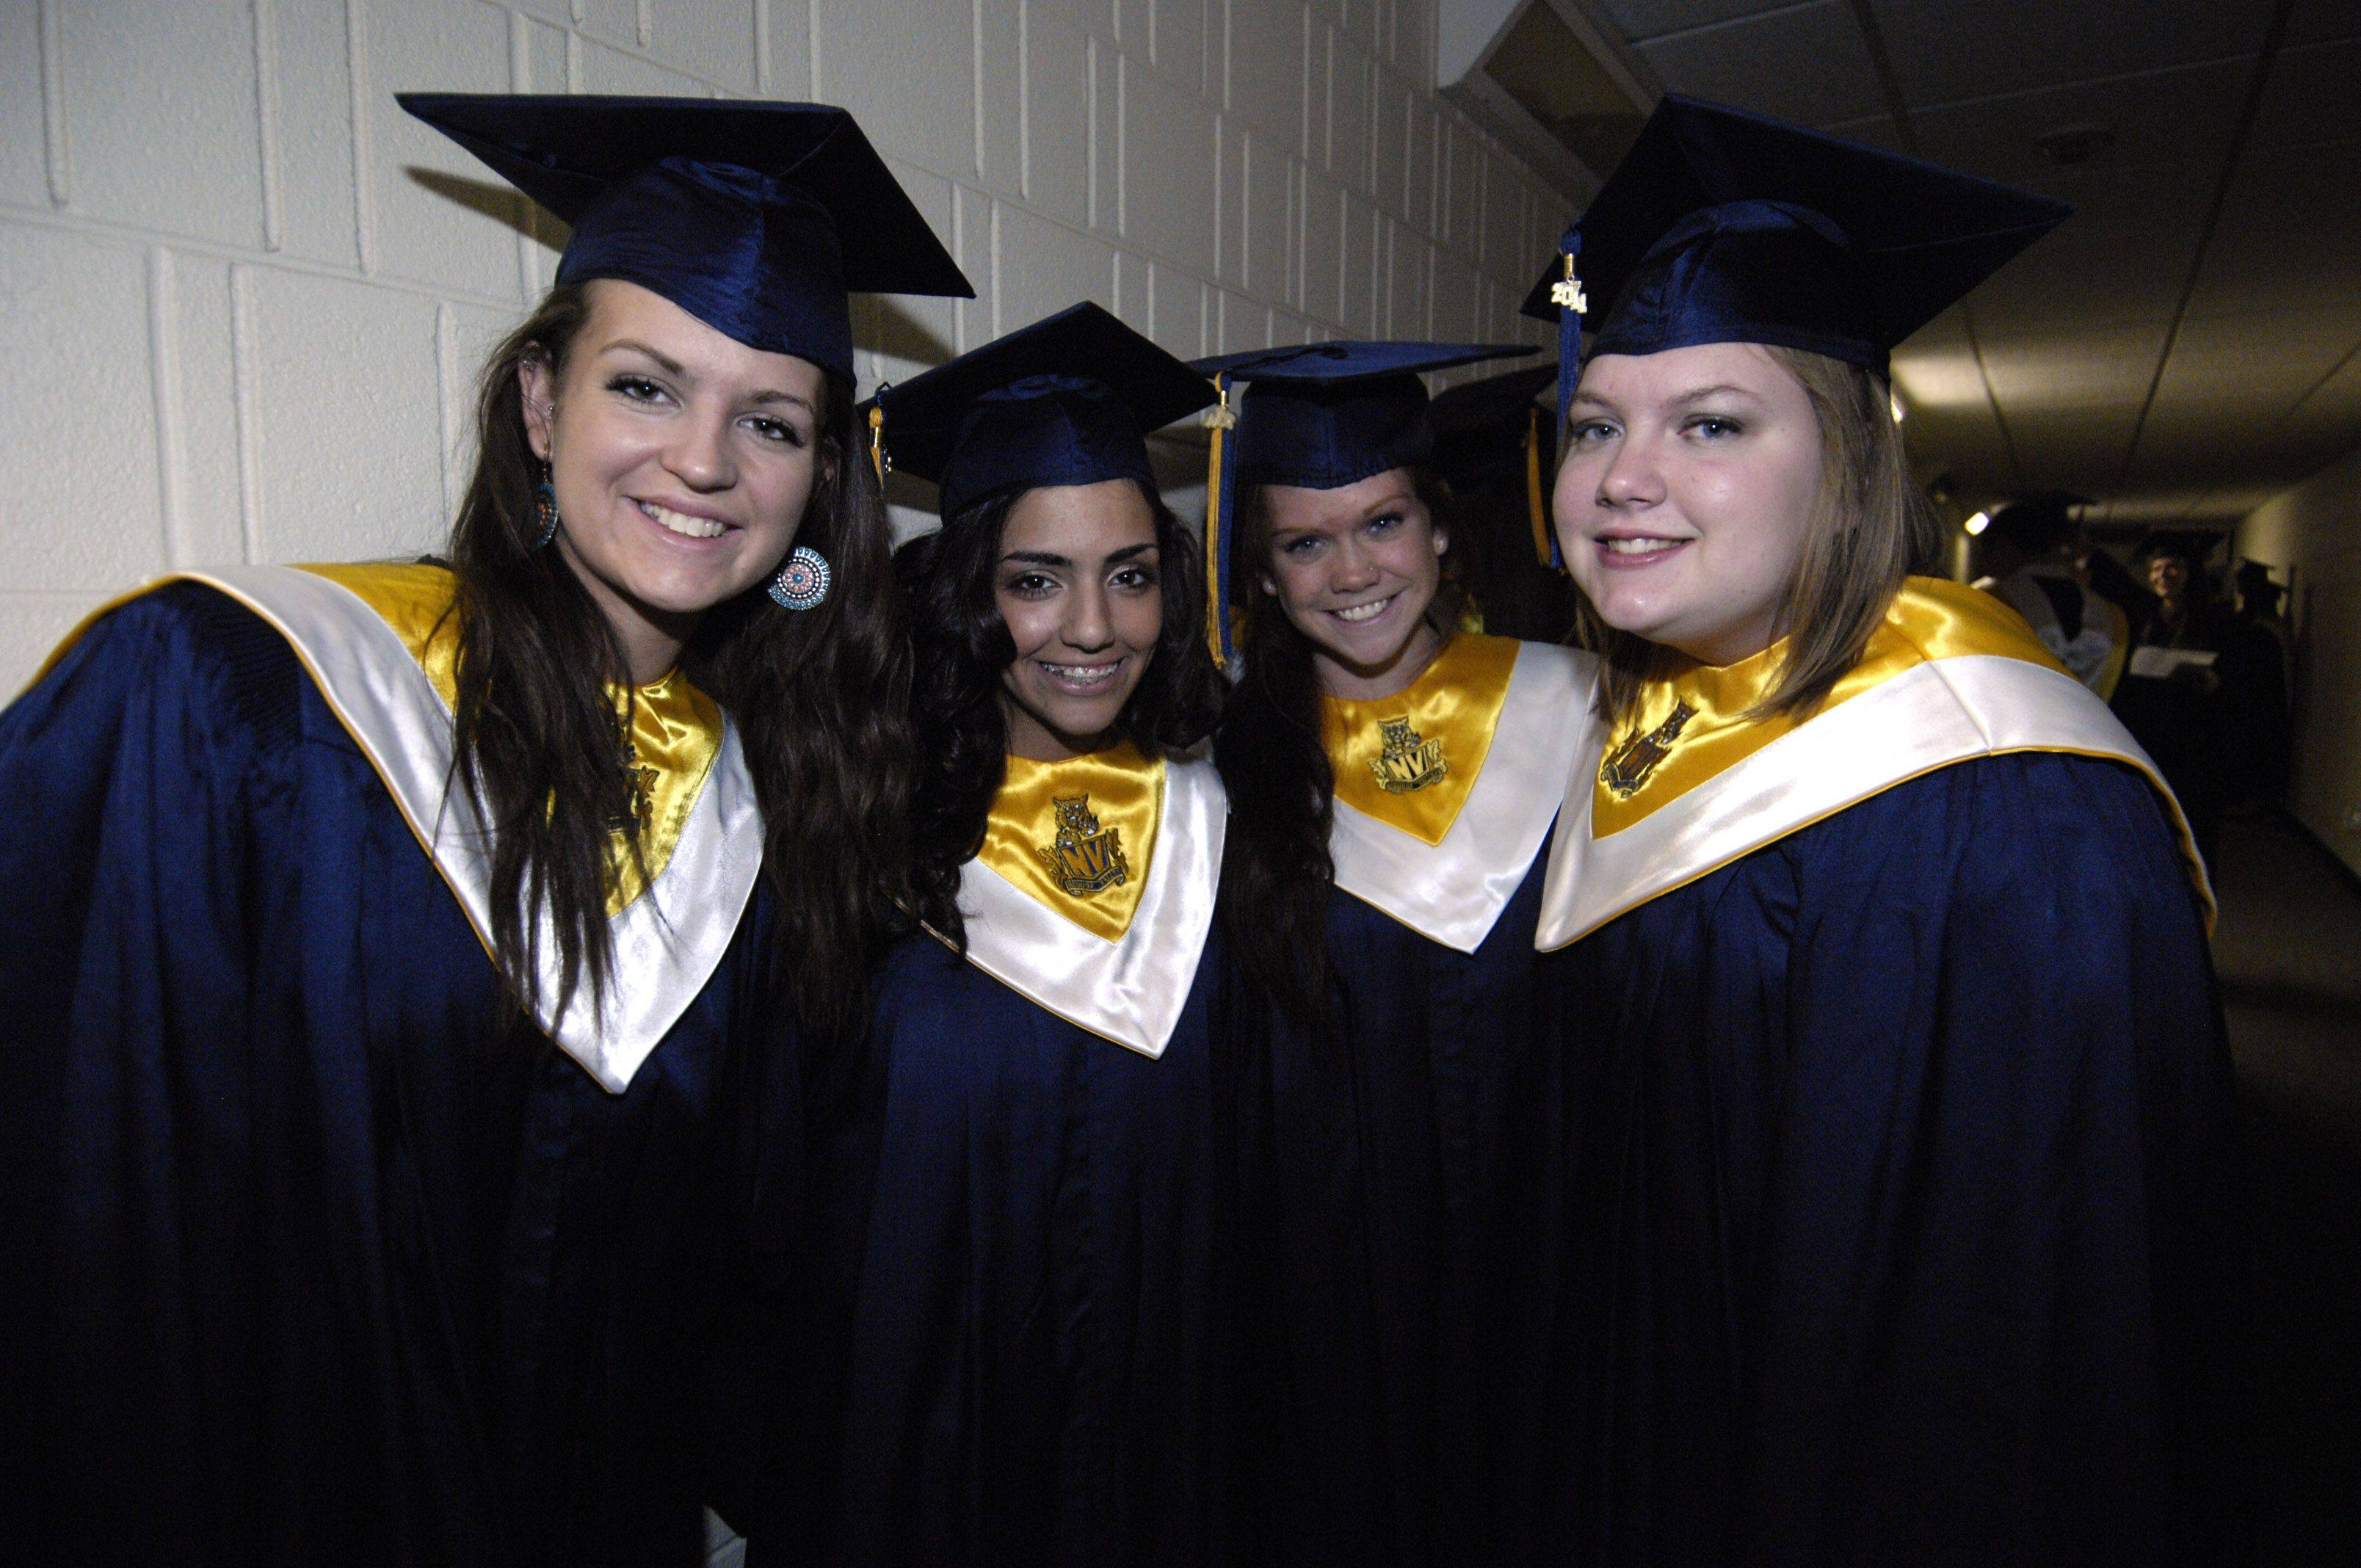 Images from the Neuqua Valley High School graduation on Sunday, May 29th.